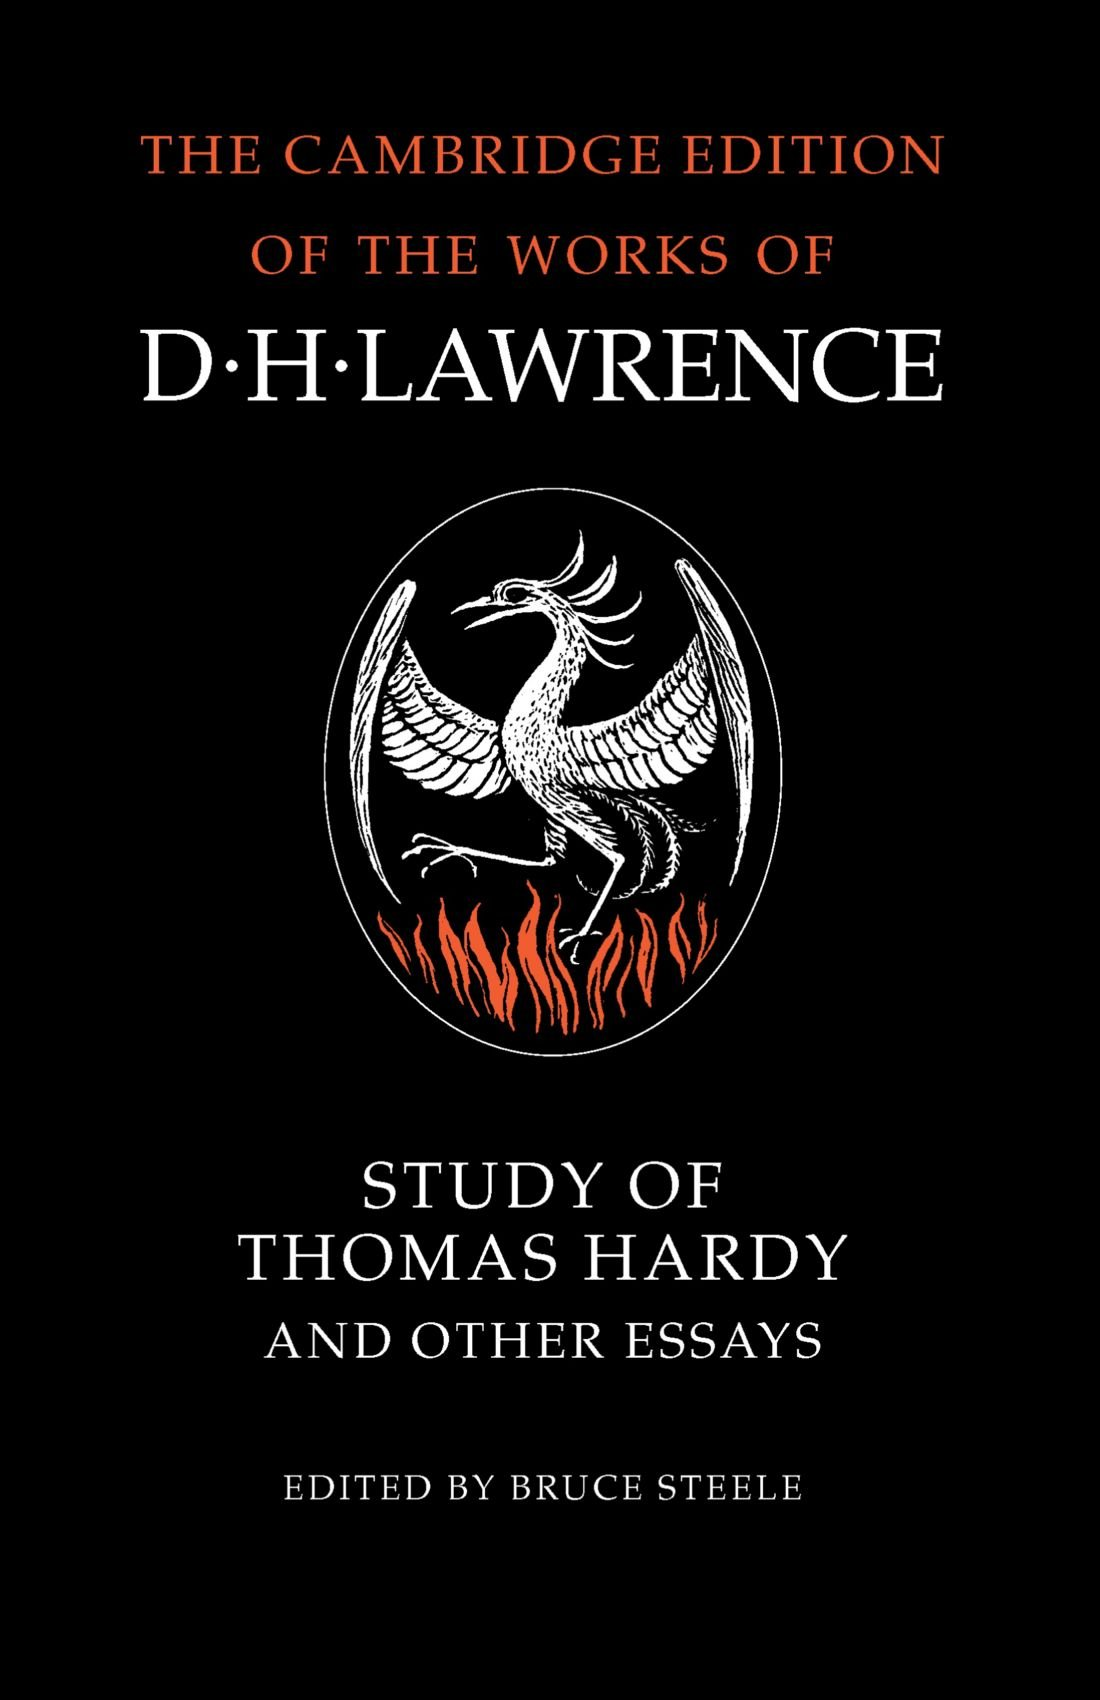 study of thomas hardy and other essays the cambridge edition of study of thomas hardy and other essays the cambridge edition of the works of d h lawrence amazon co uk bruce steele 9780521272483 books